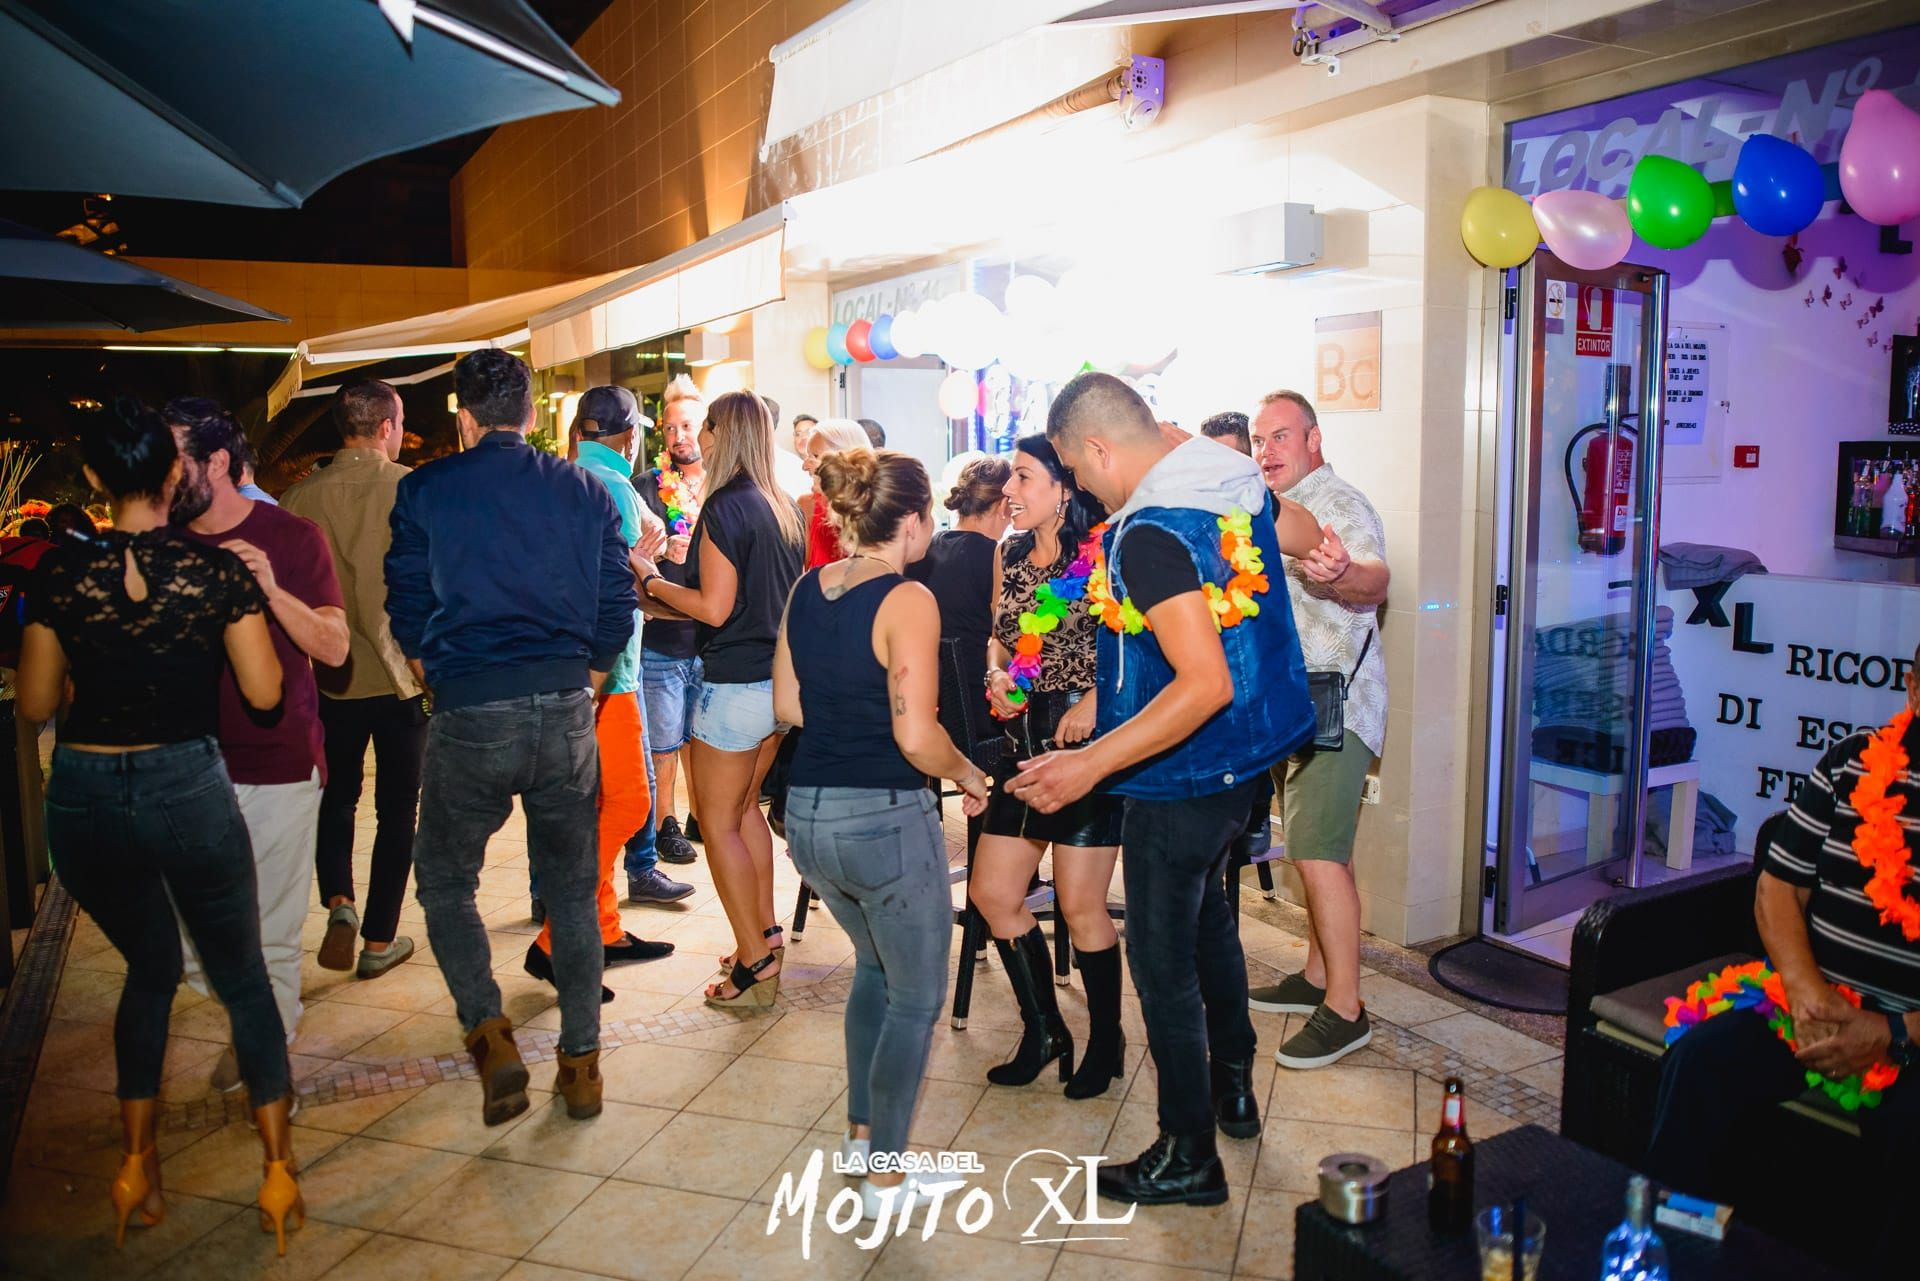 Private parties at Los Cristianos